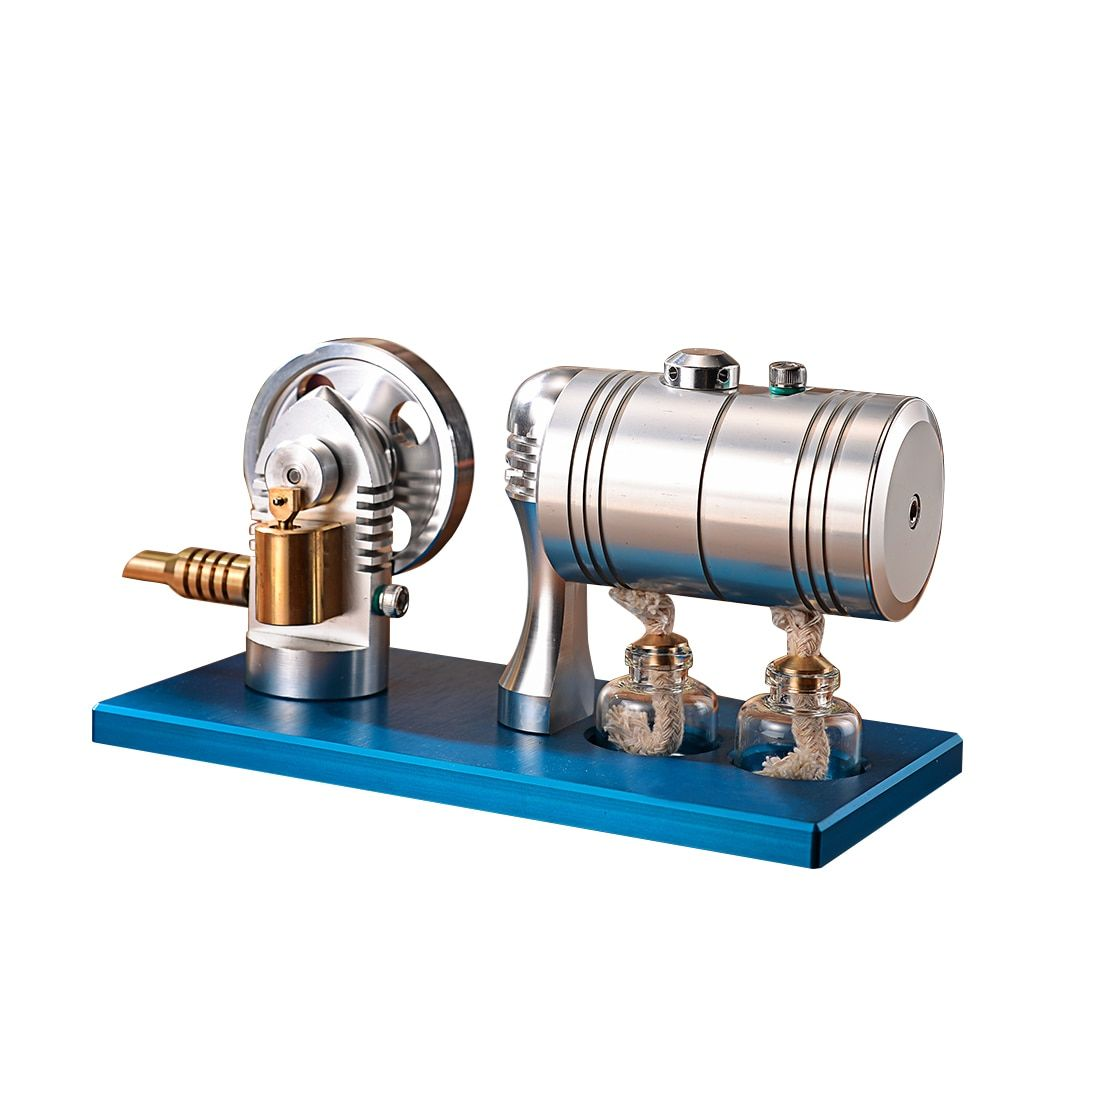 High Quality Metal Bootable Steam Engine Model Retro Stirling Engine Model with Heating Boiler Alcohol Burner DIY Science Tools